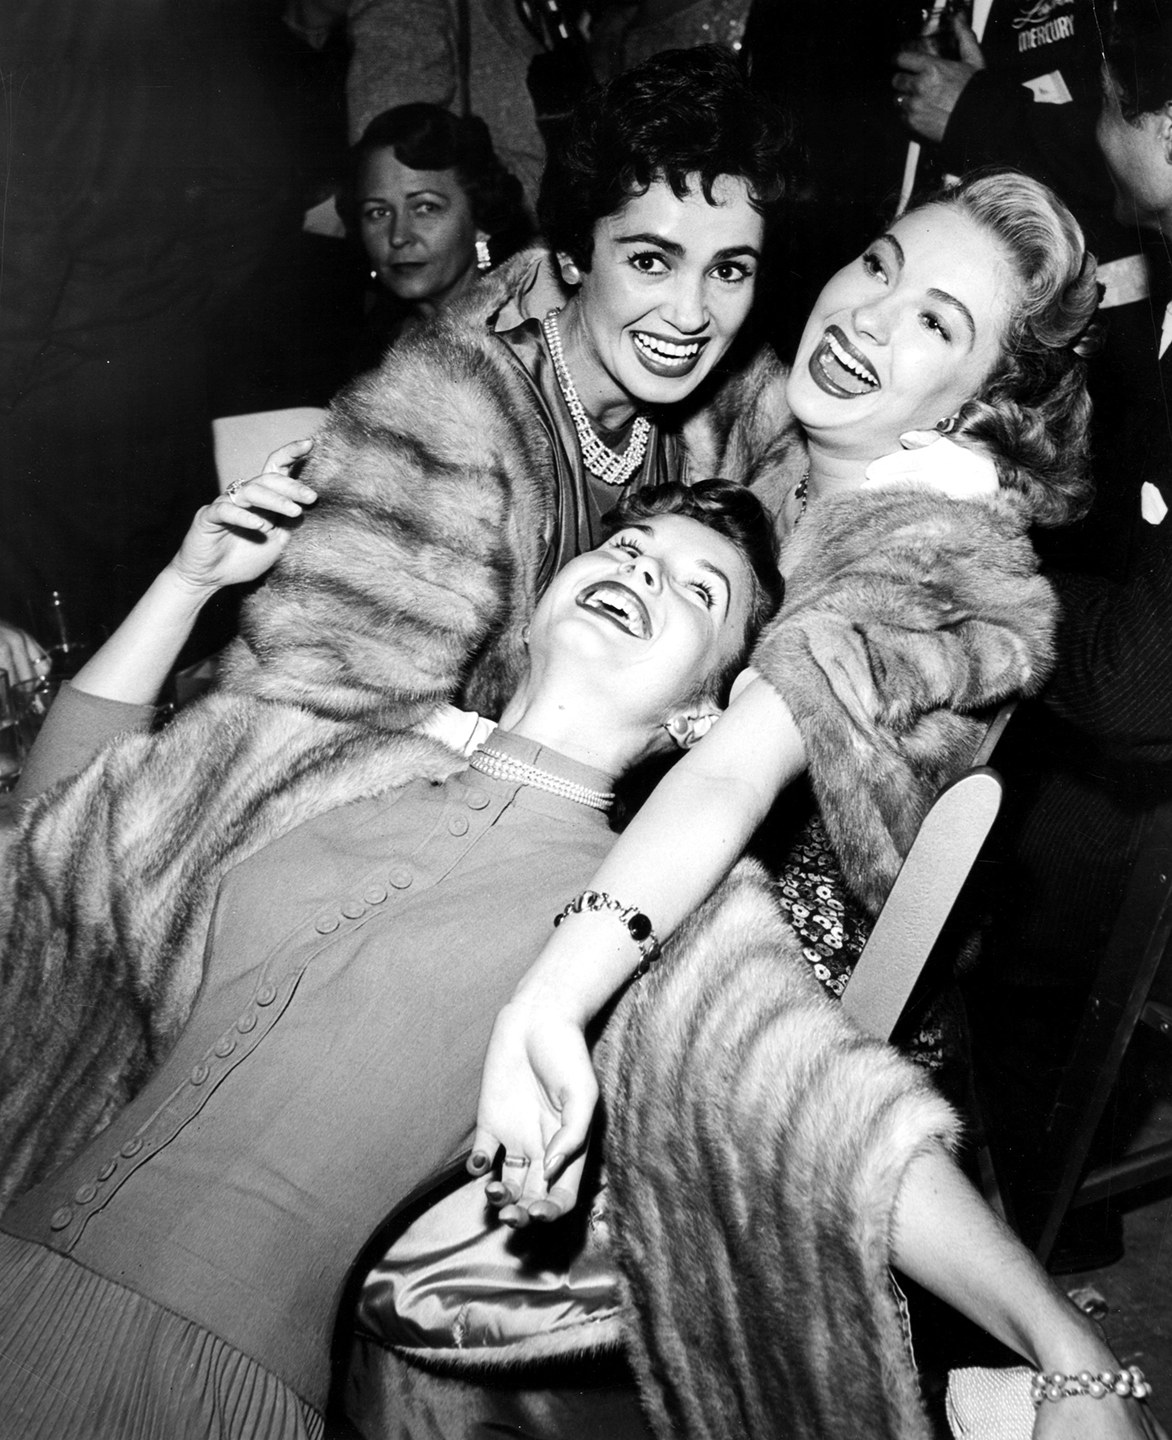 Susan Cabot, Debbie Reynolds, and Lori Nelson in 1953